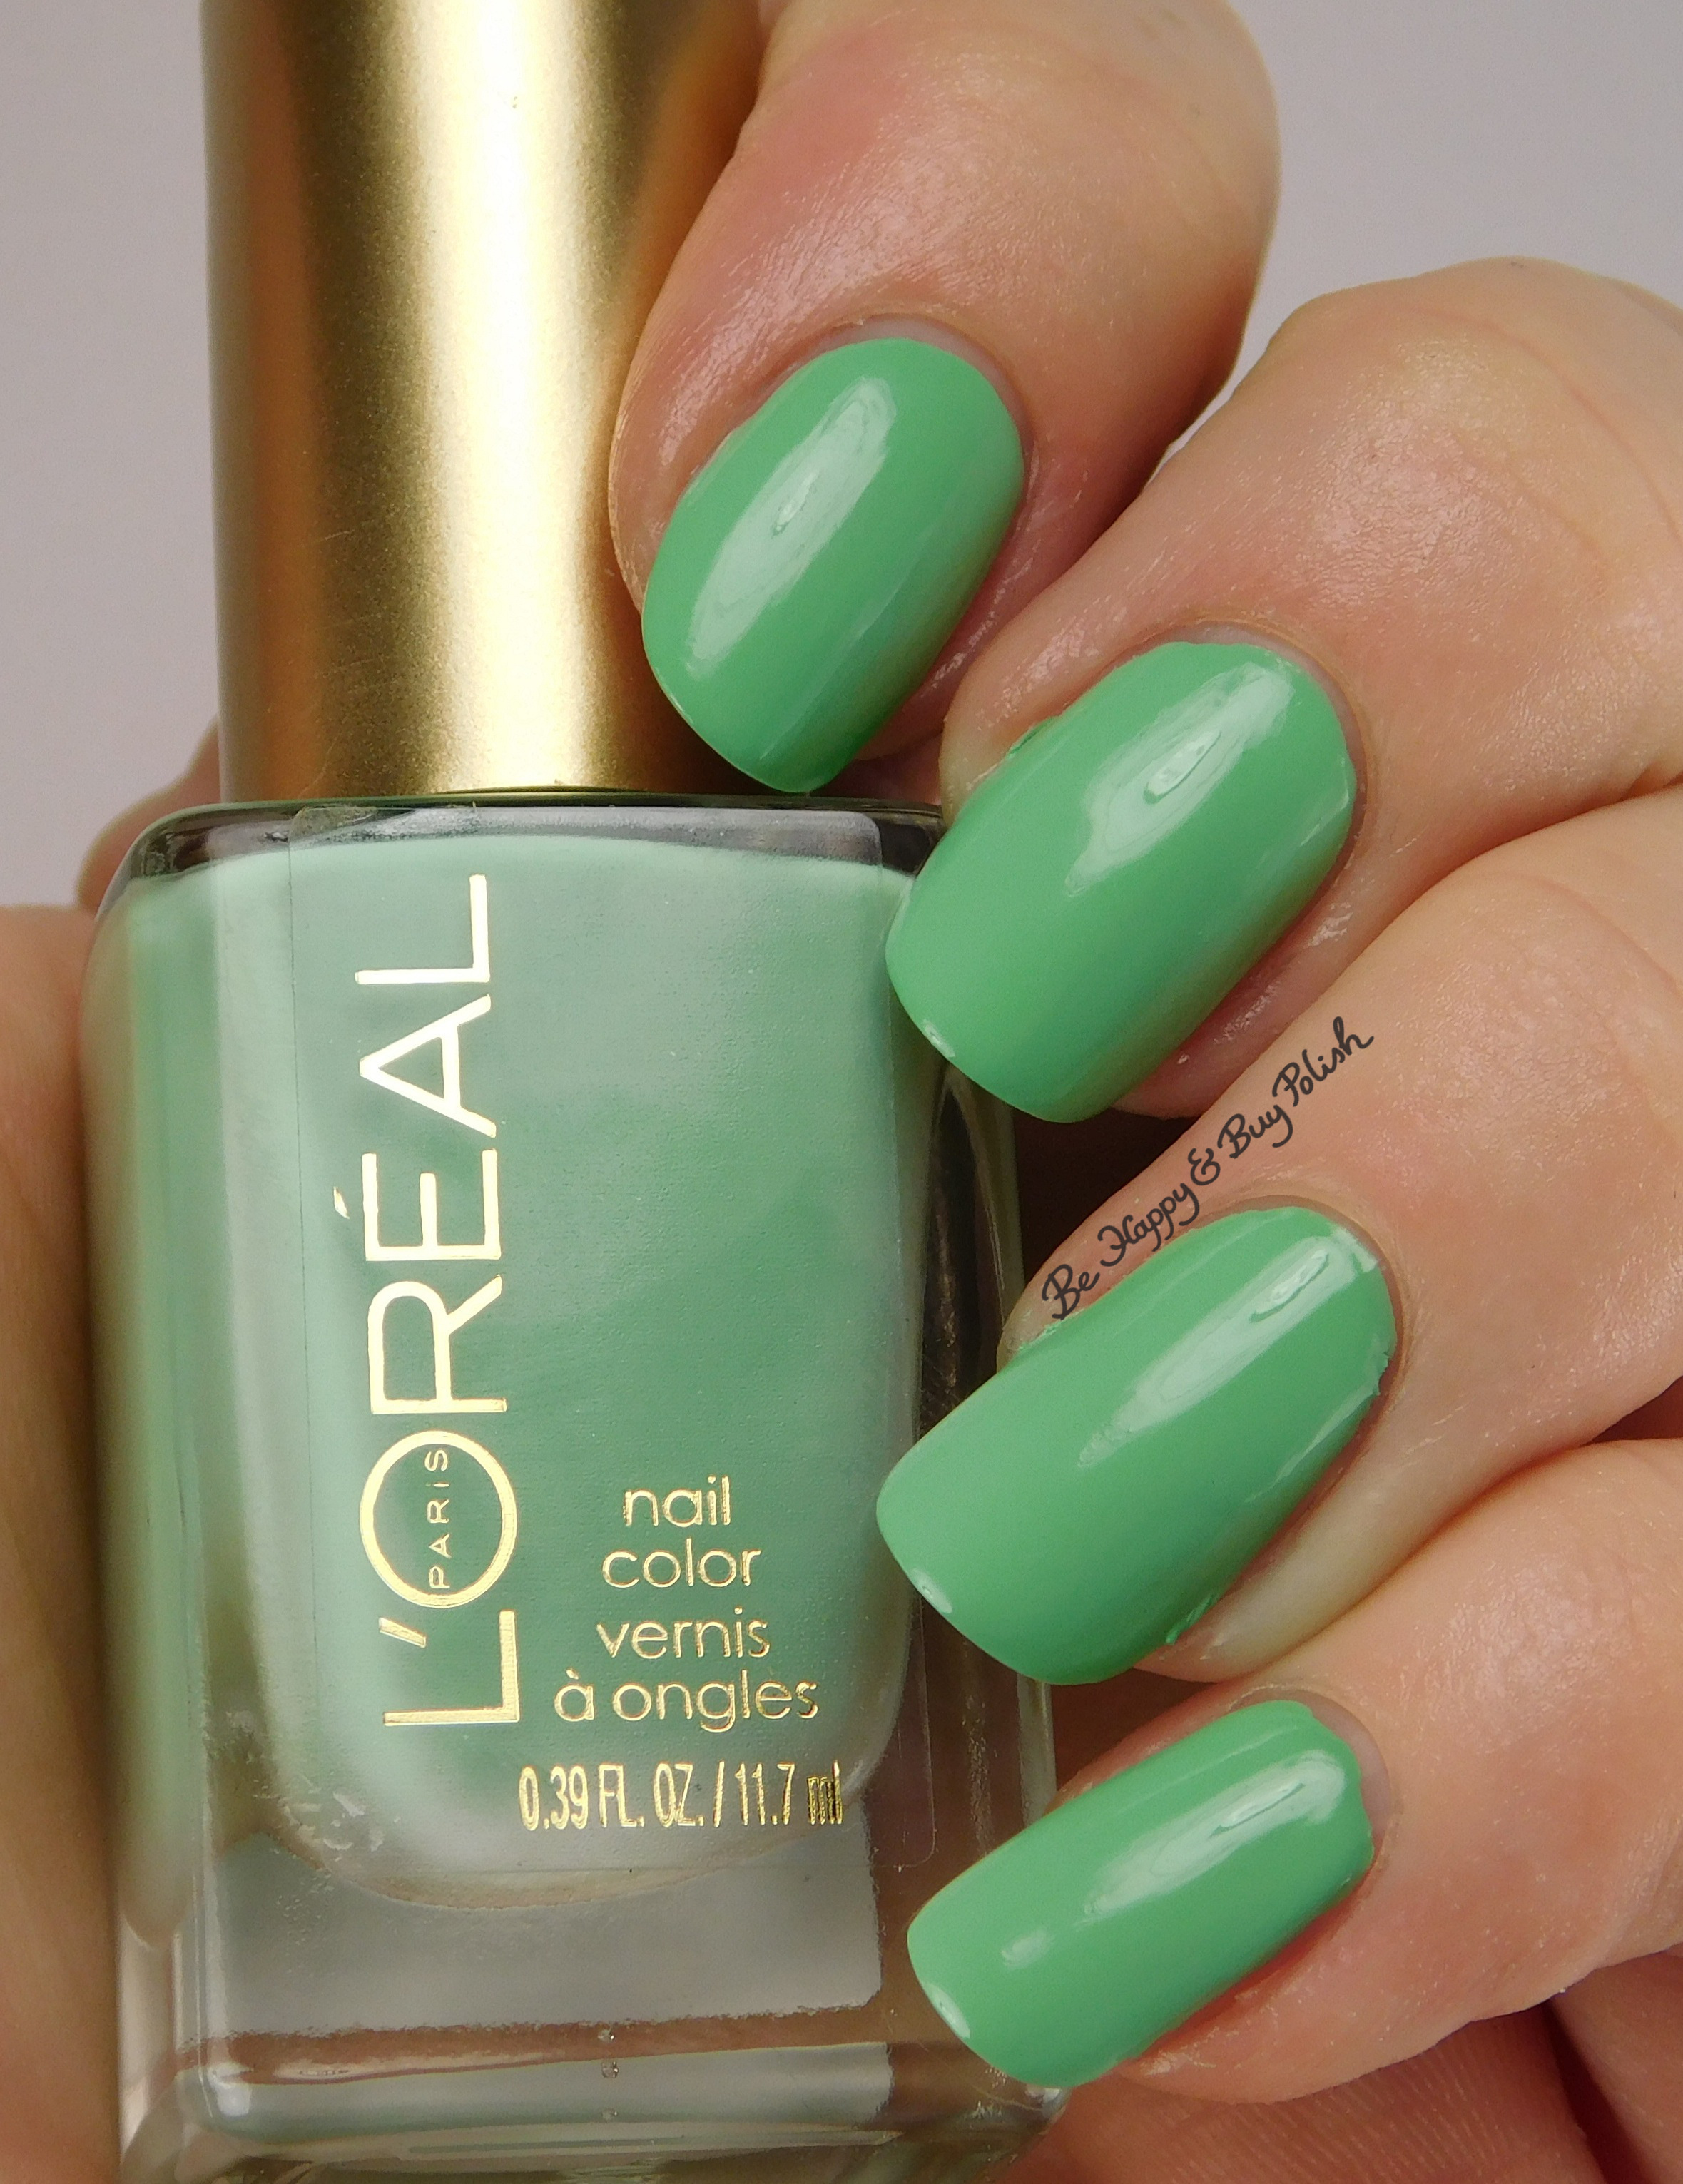 L'Oreal Bohemian Beauty nail polishes swatches + review | Be Happy ...